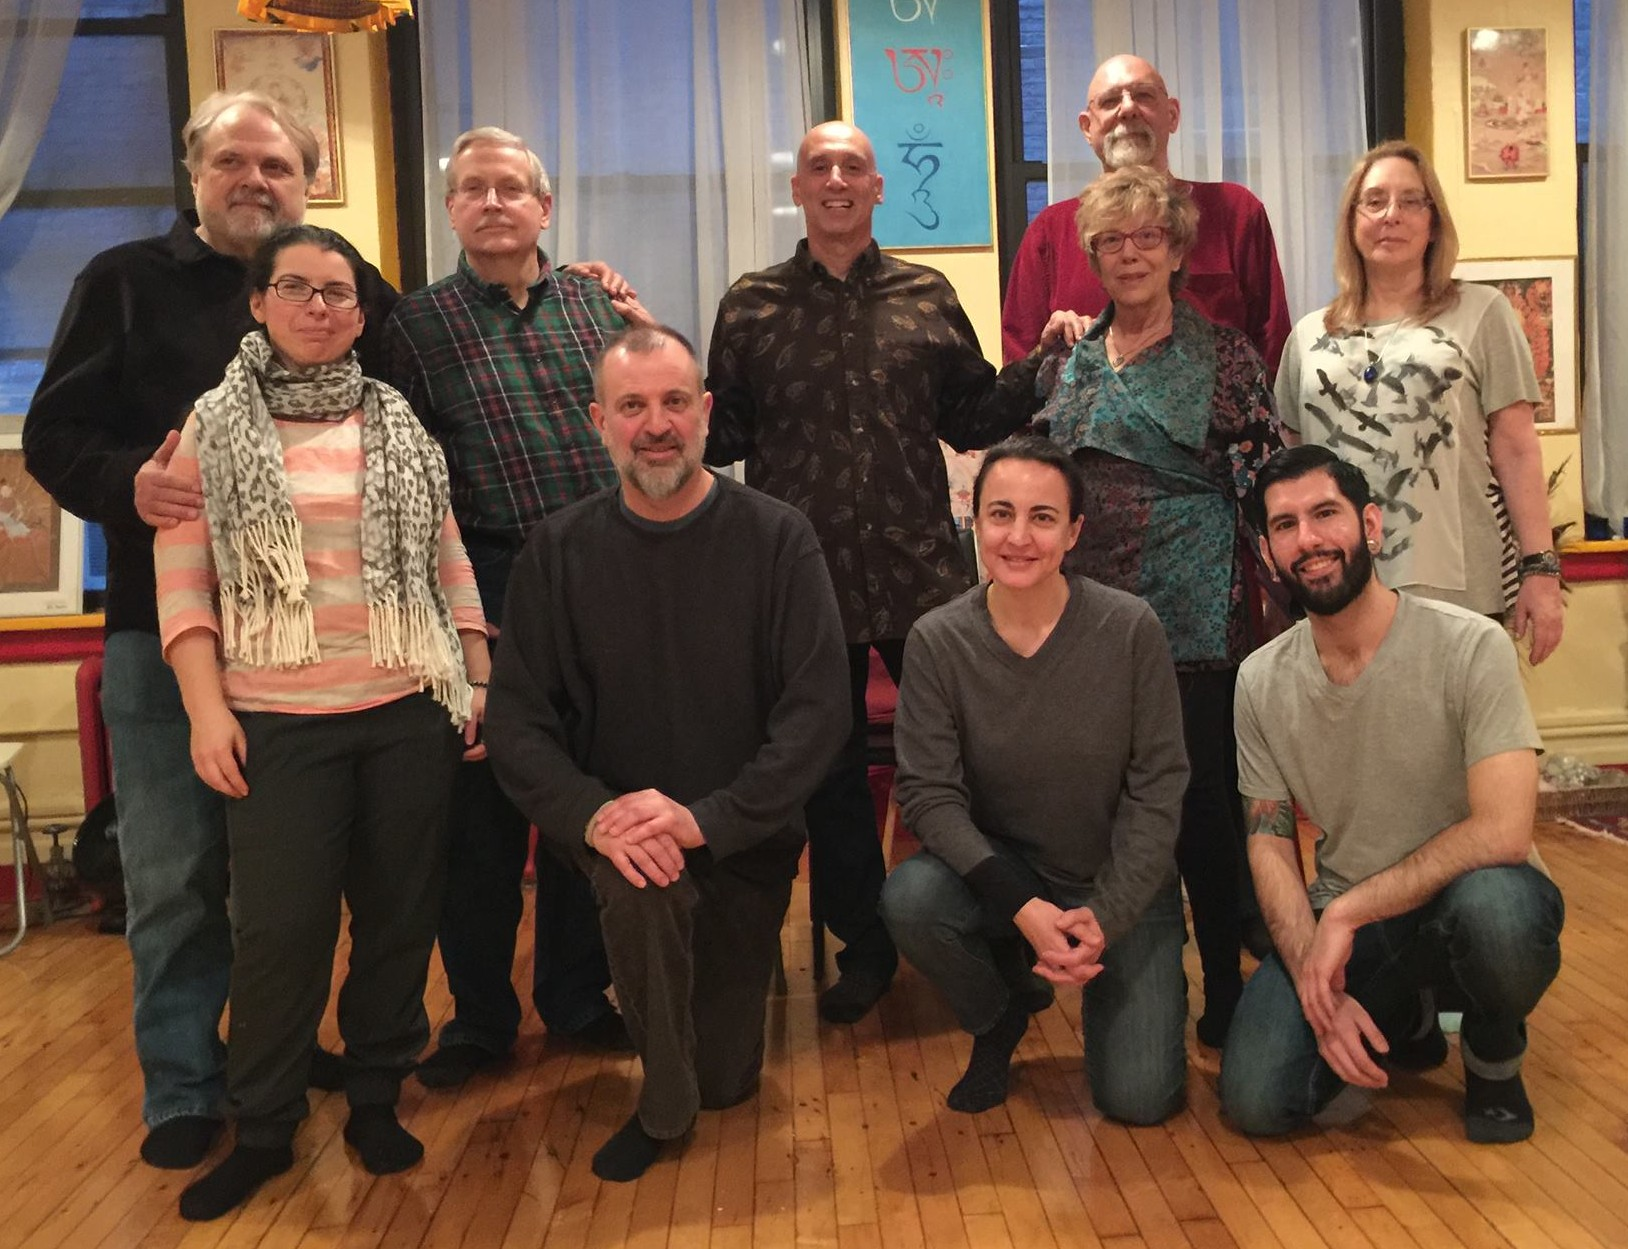 A one-day course entitled The Cycle of Day or Night done for the benefit of Kundrolling, NYC, with Michael Katz on Sunday, January 31, 2016.